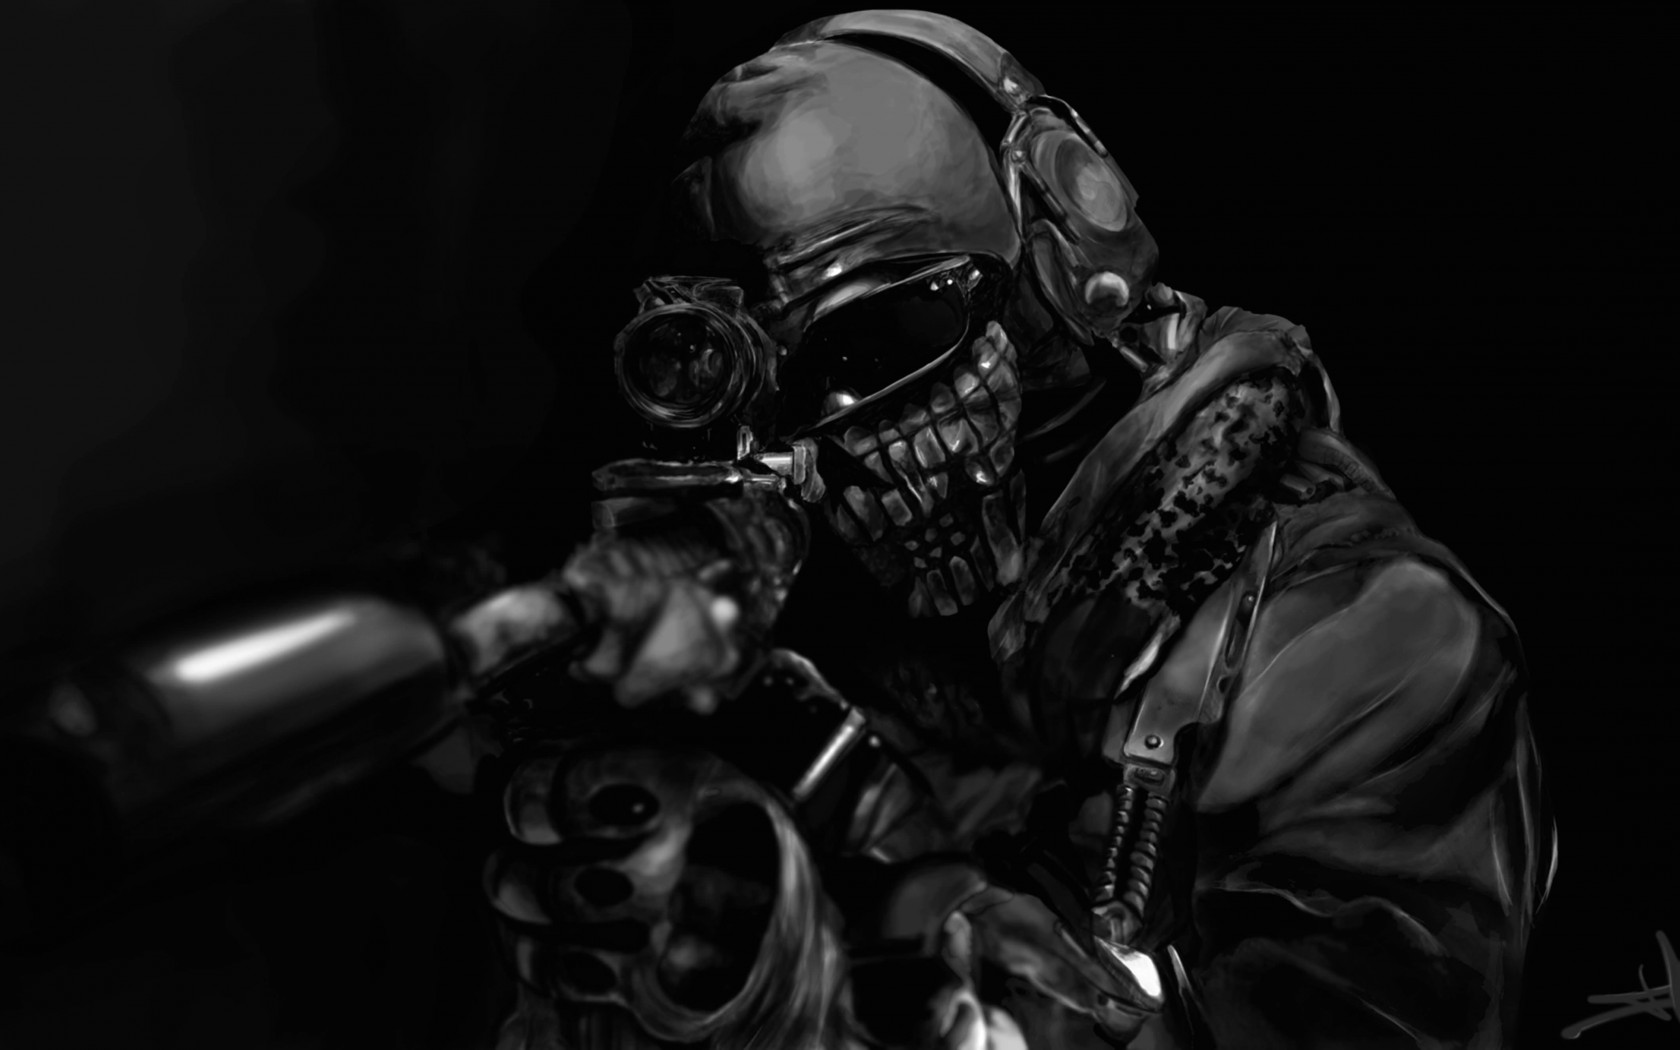 Call of Duty Ghost Masked Warrior Wallpaper for Desktop 1680x1050